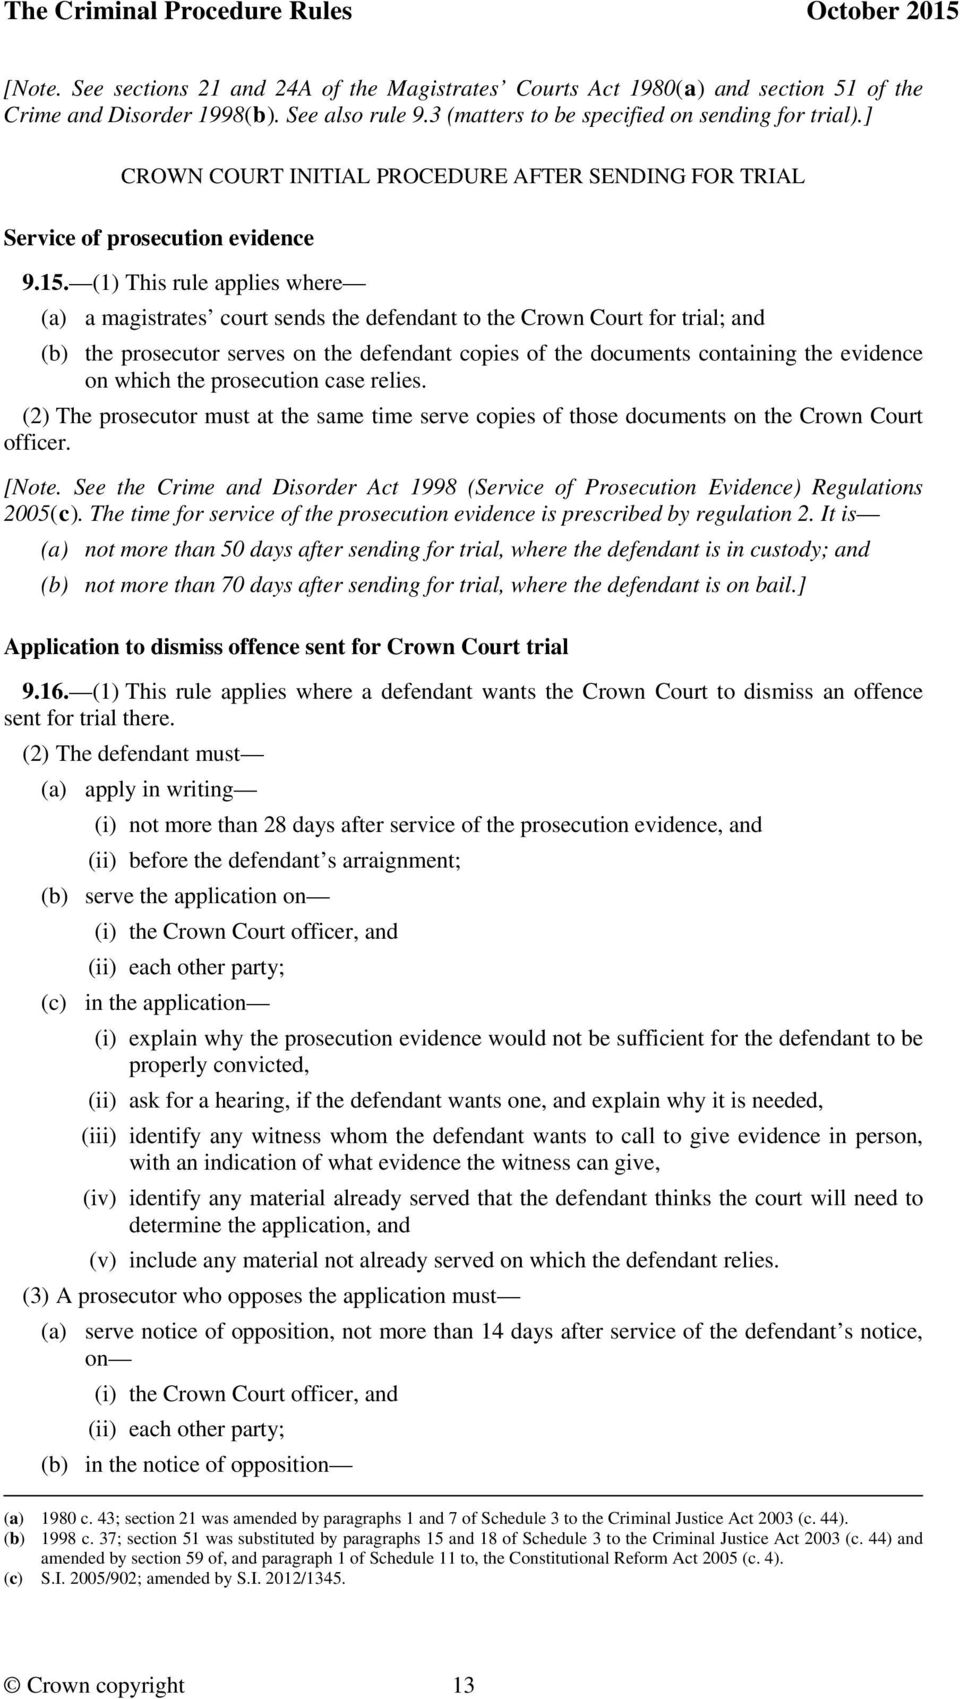 (1) This rule applies where (a) a magistrates court sends the defendant to the Crown Court for trial; and (b) the prosecutor serves on the defendant copies of the documents containing the evidence on